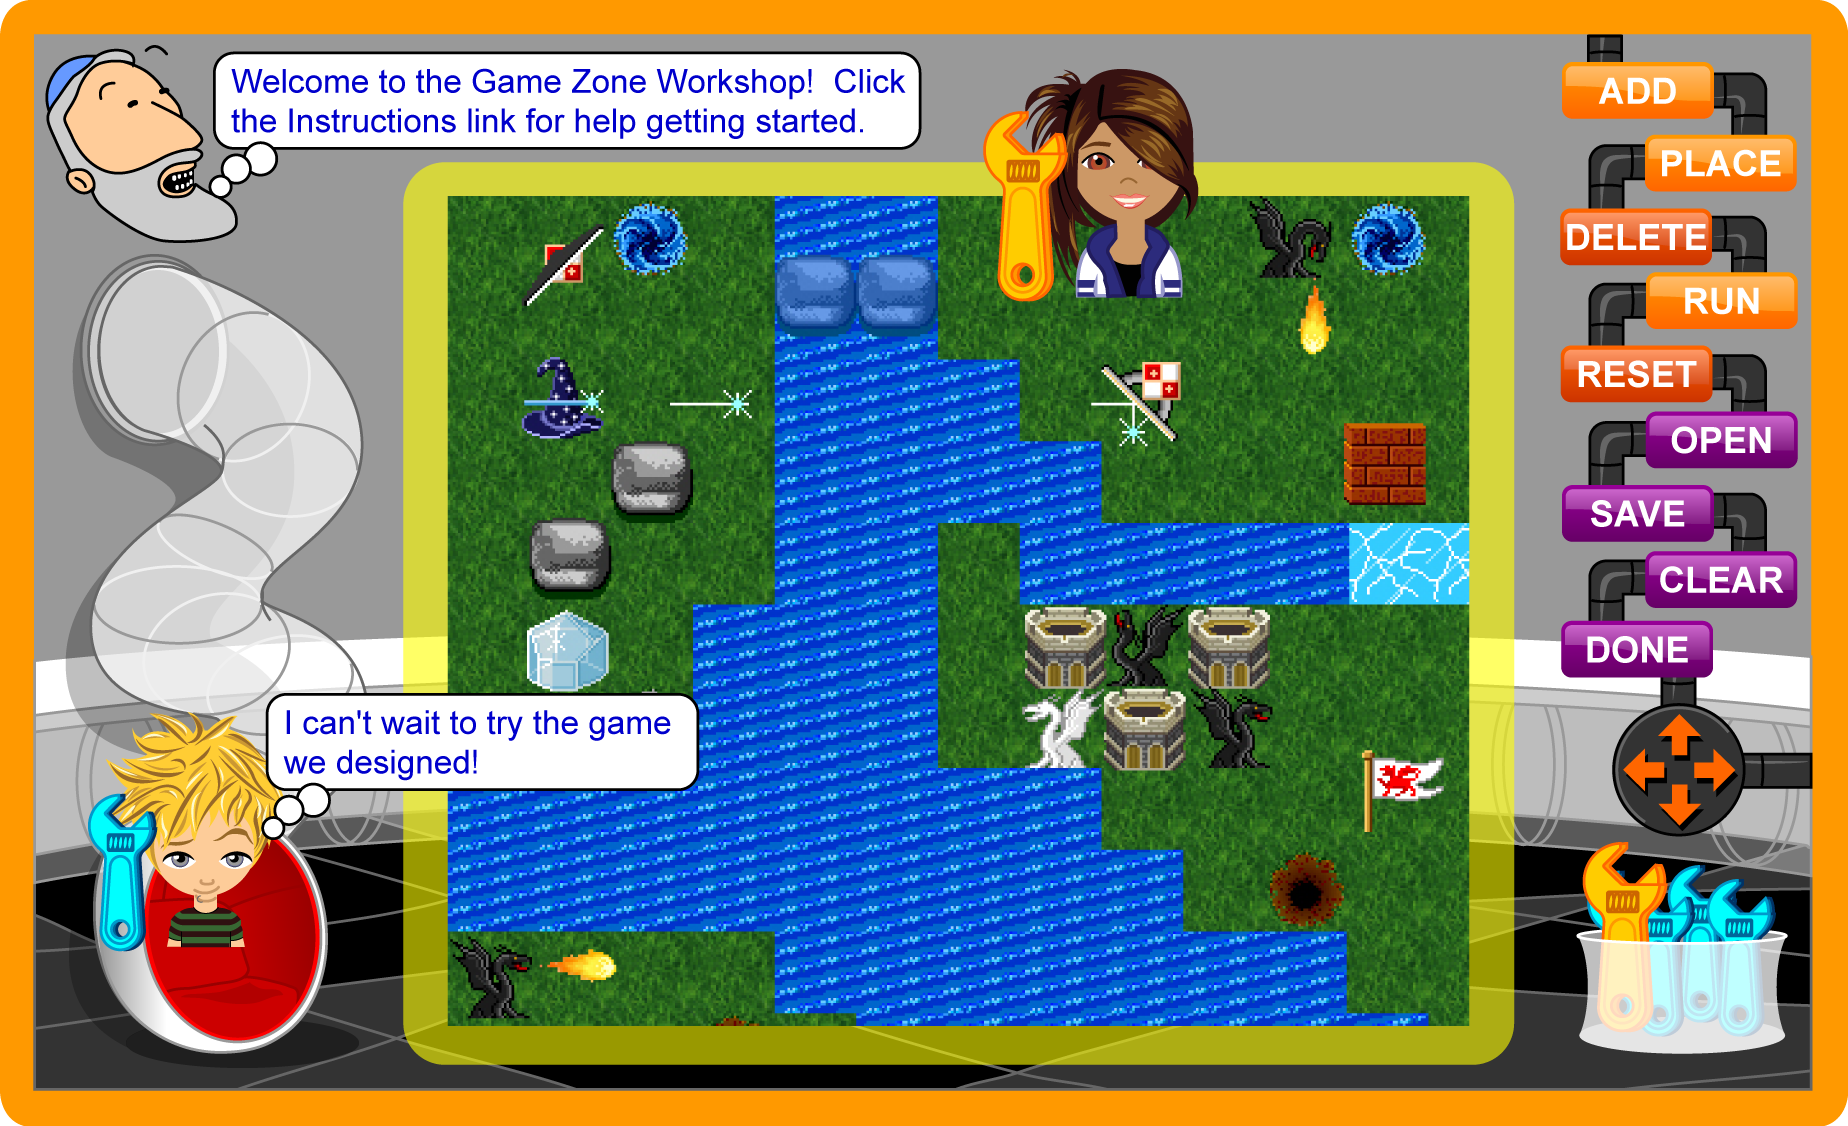 gamezone_inside_screenshot.png